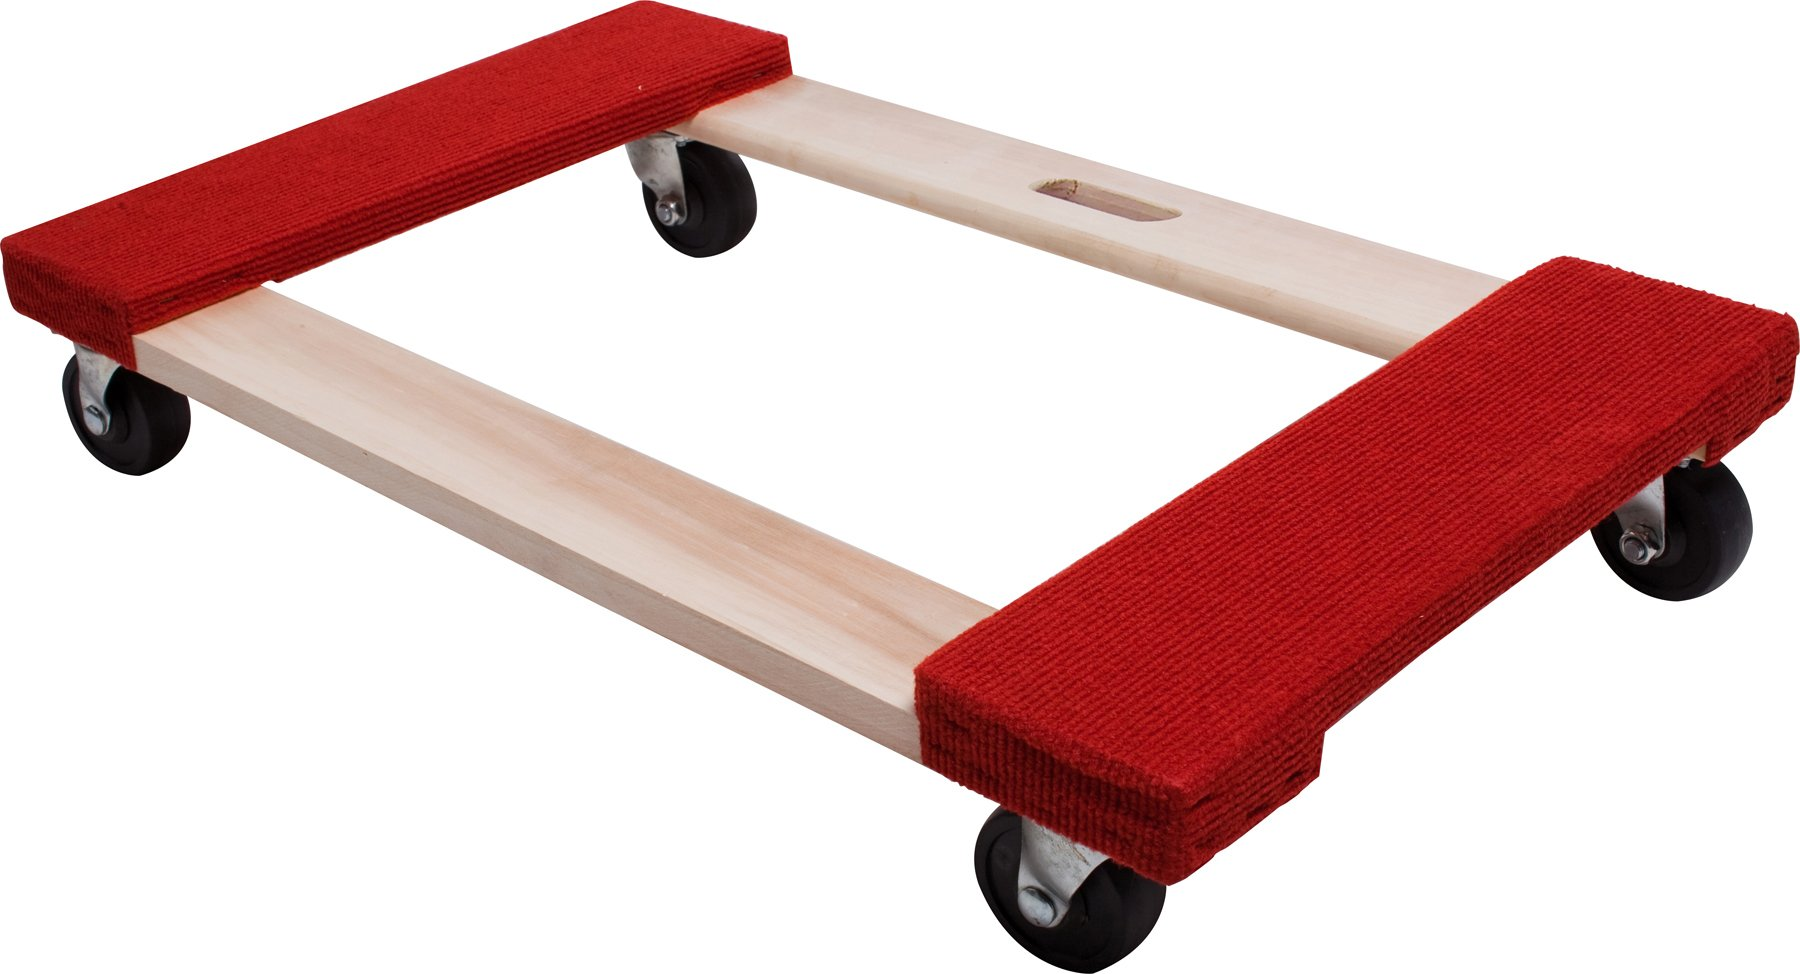 Move-It 9850 Carpeted Solid Wood Moving Dolly, 20-Inch x 30-Inch, 840-lb Load Capacity, 3-Inch Hard Rubber Casters